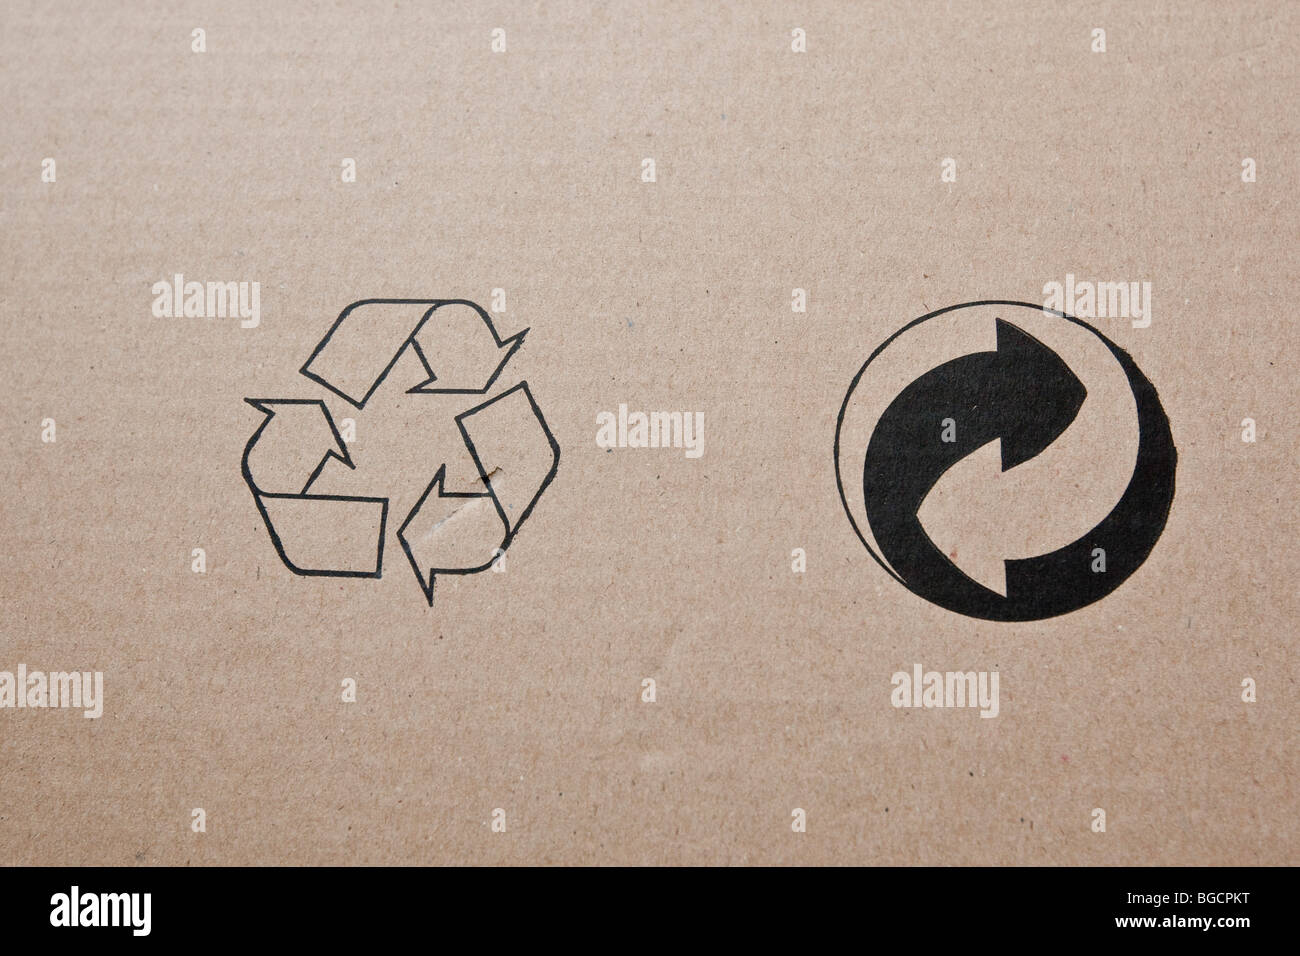 Two international recycling symbols on a piece of cardboard, December 2009. - Stock Image